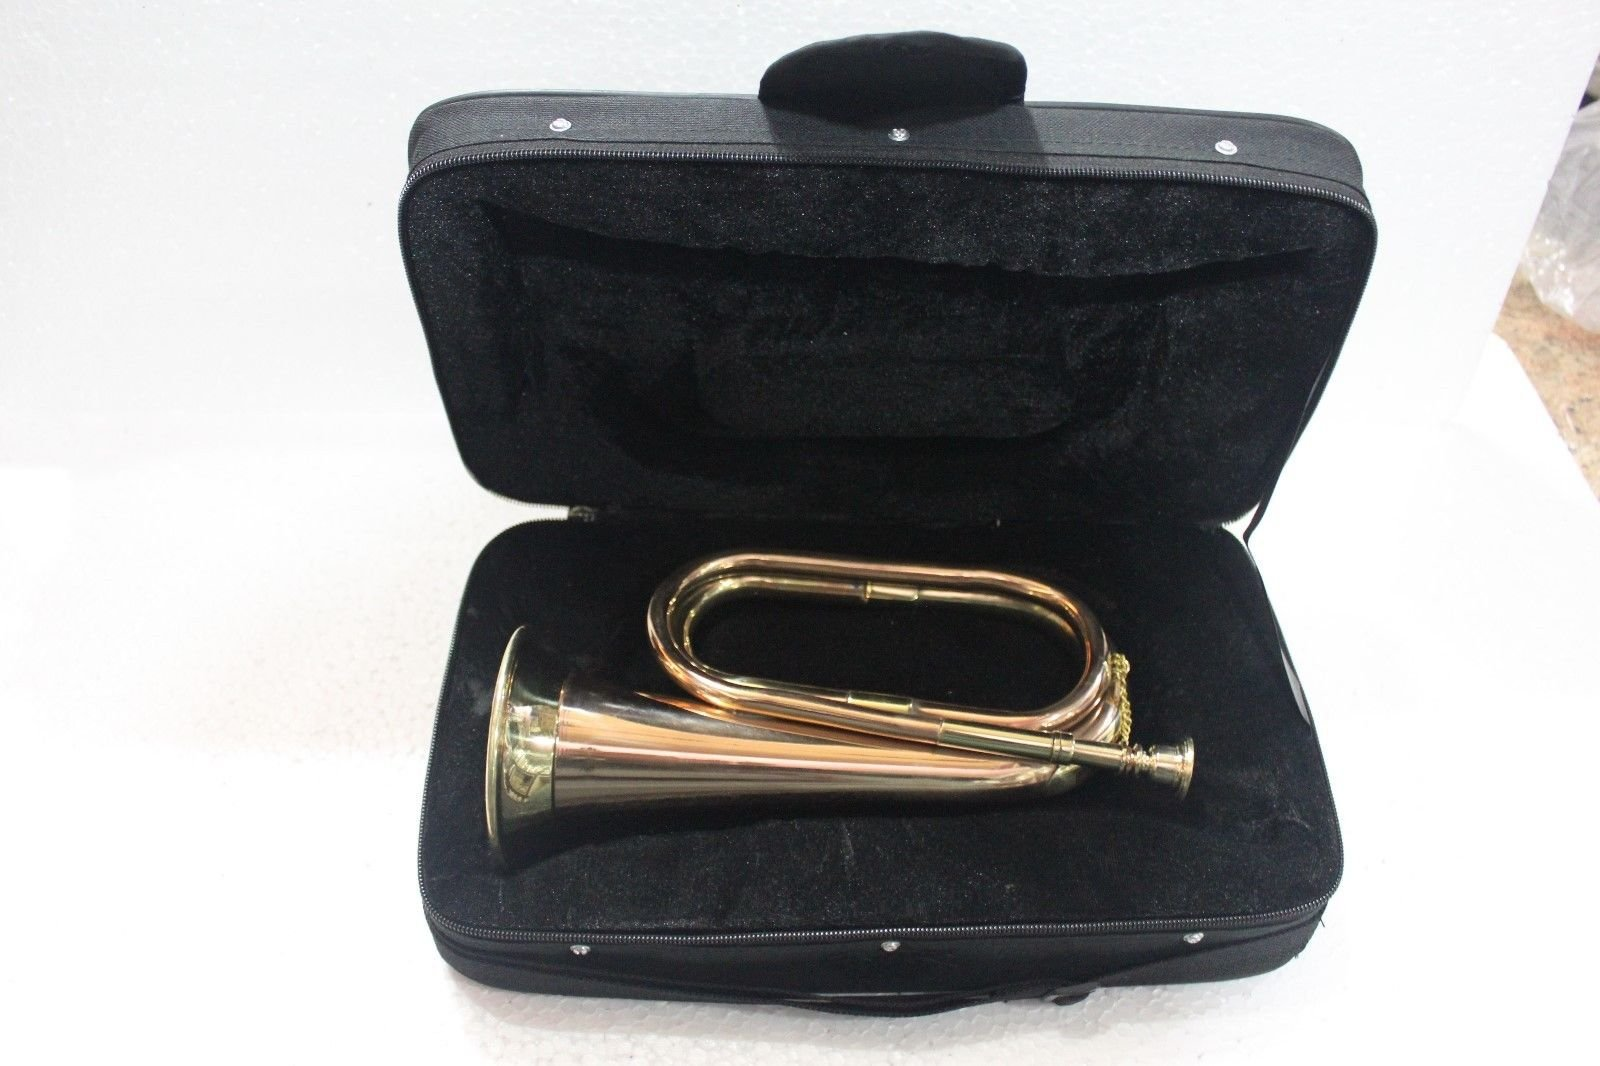 Queen Brass Bugle Brass With Bugle Instrument W/Case Gold by Queen Brass